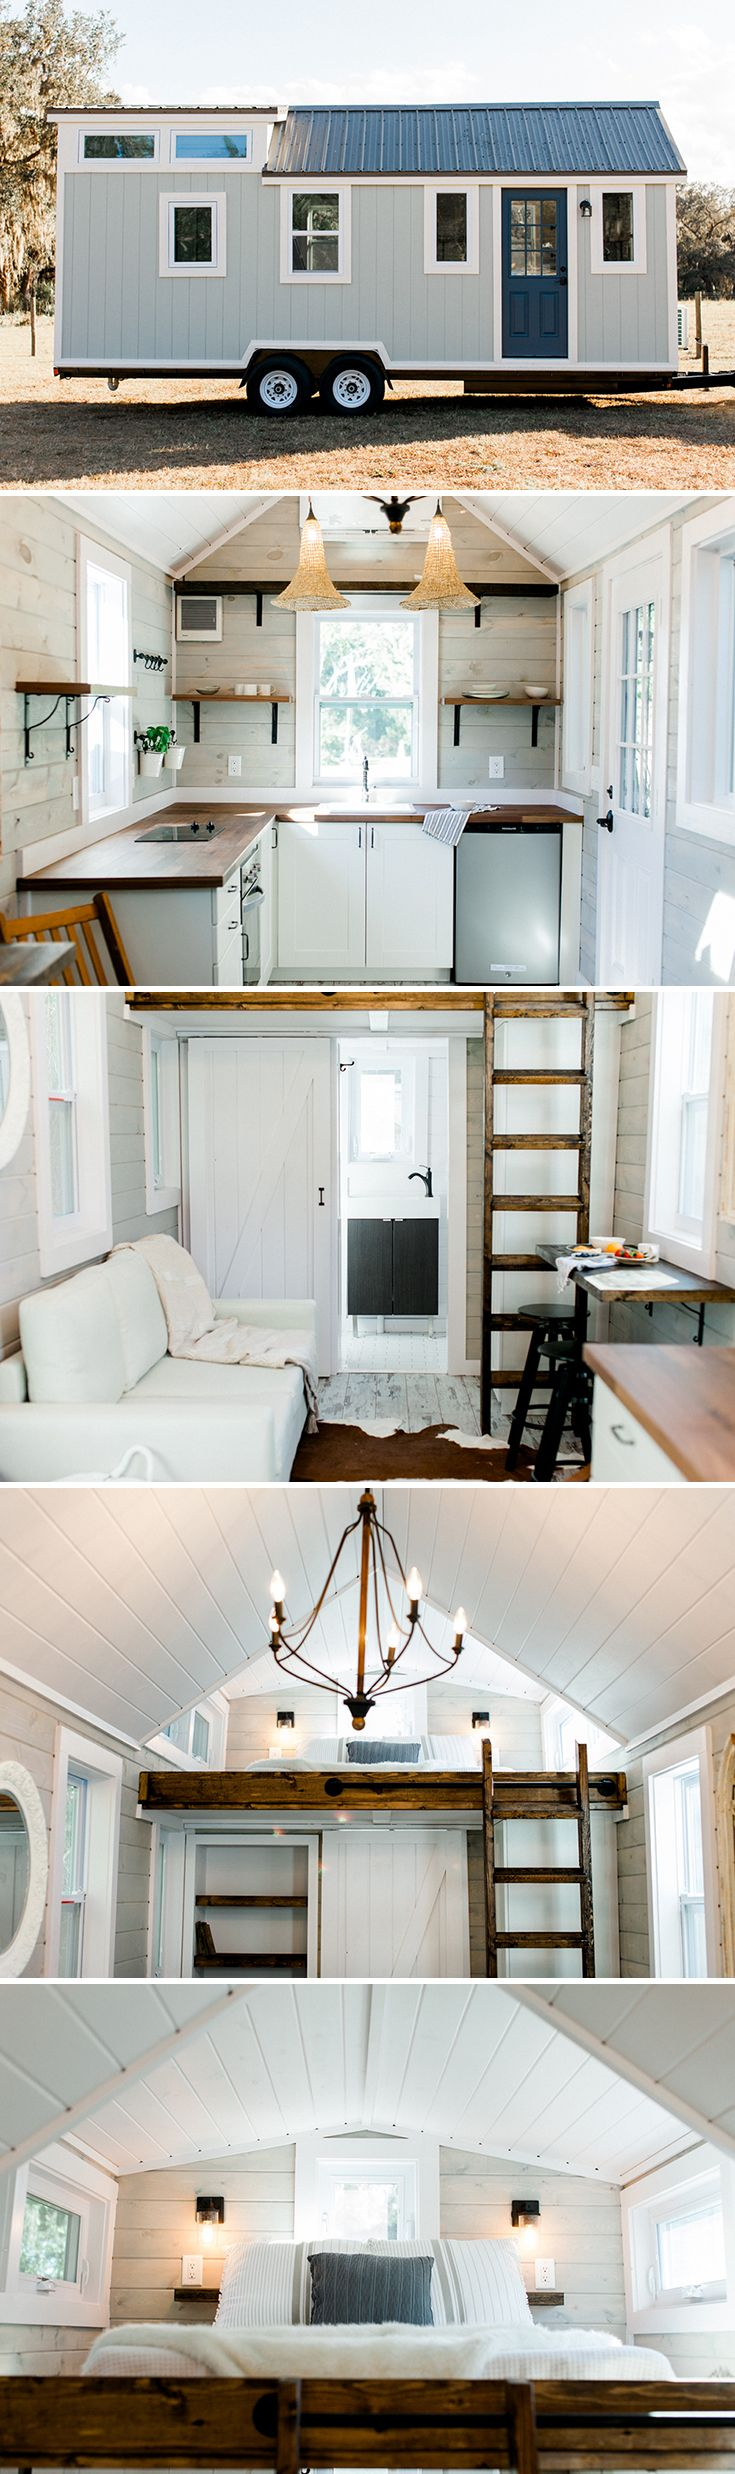 tiny marta by sanctuary tiny homes white house interiortiny